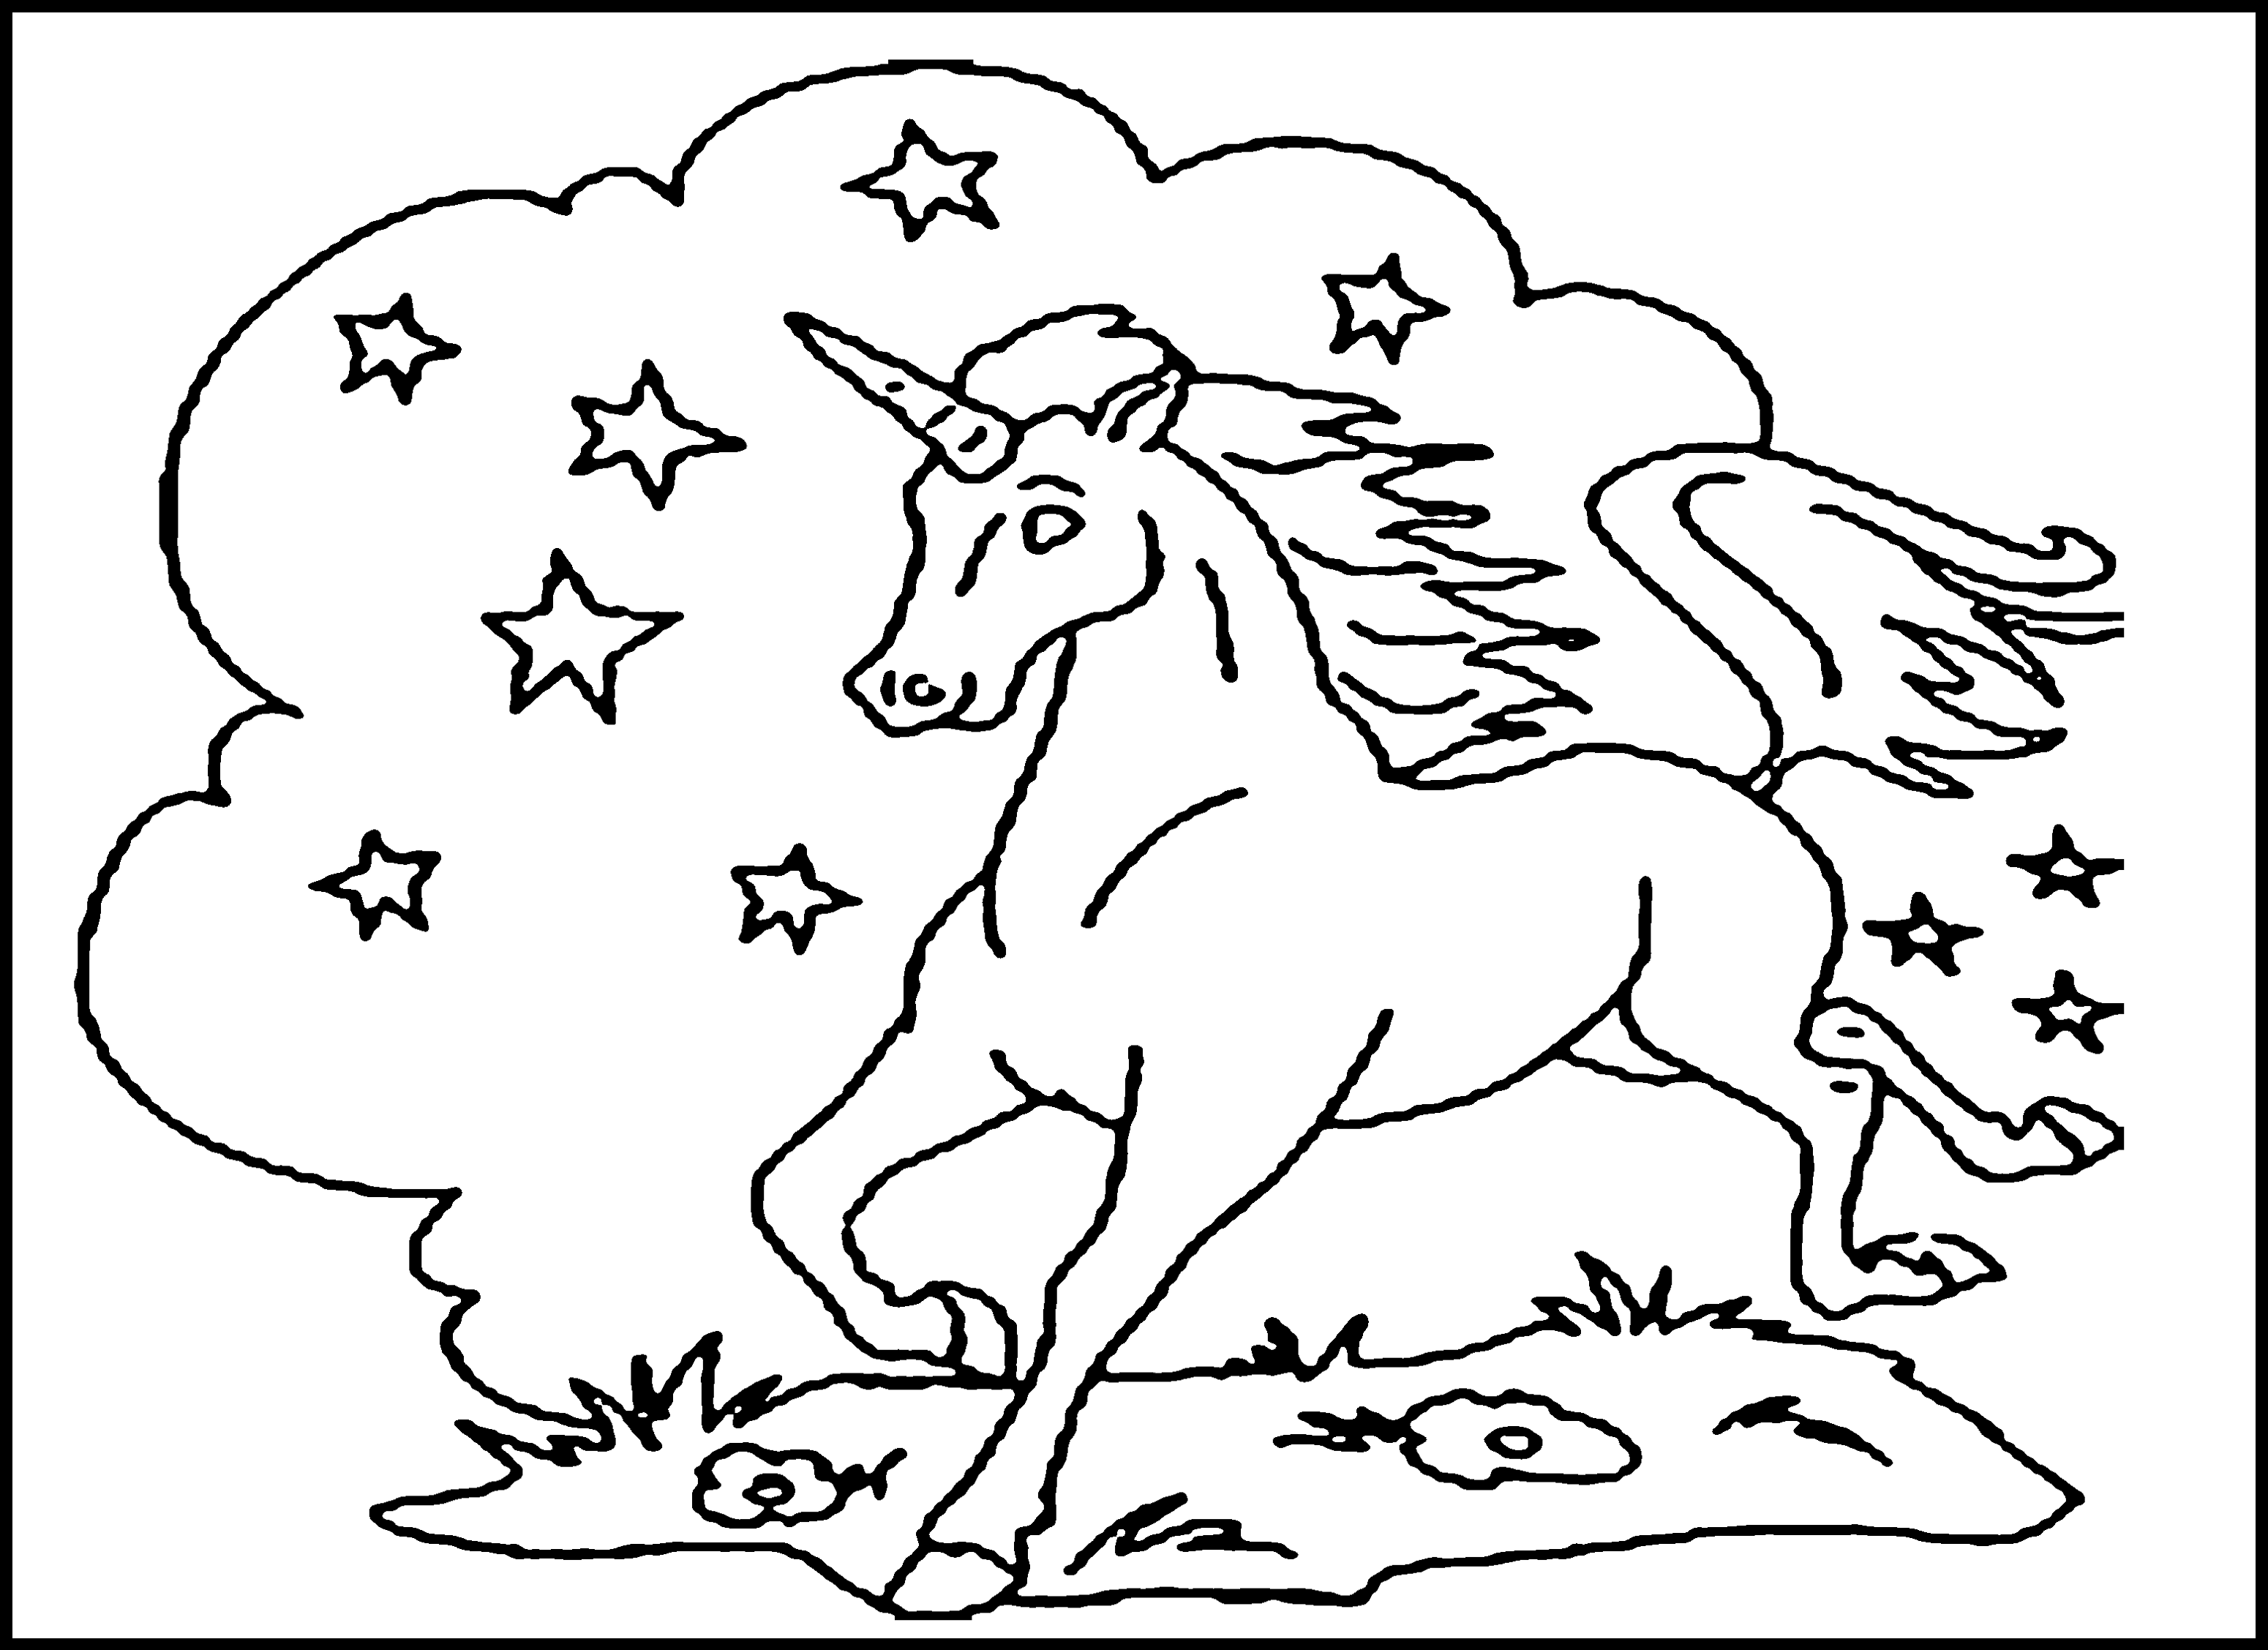 Coloring Sheets for Kids